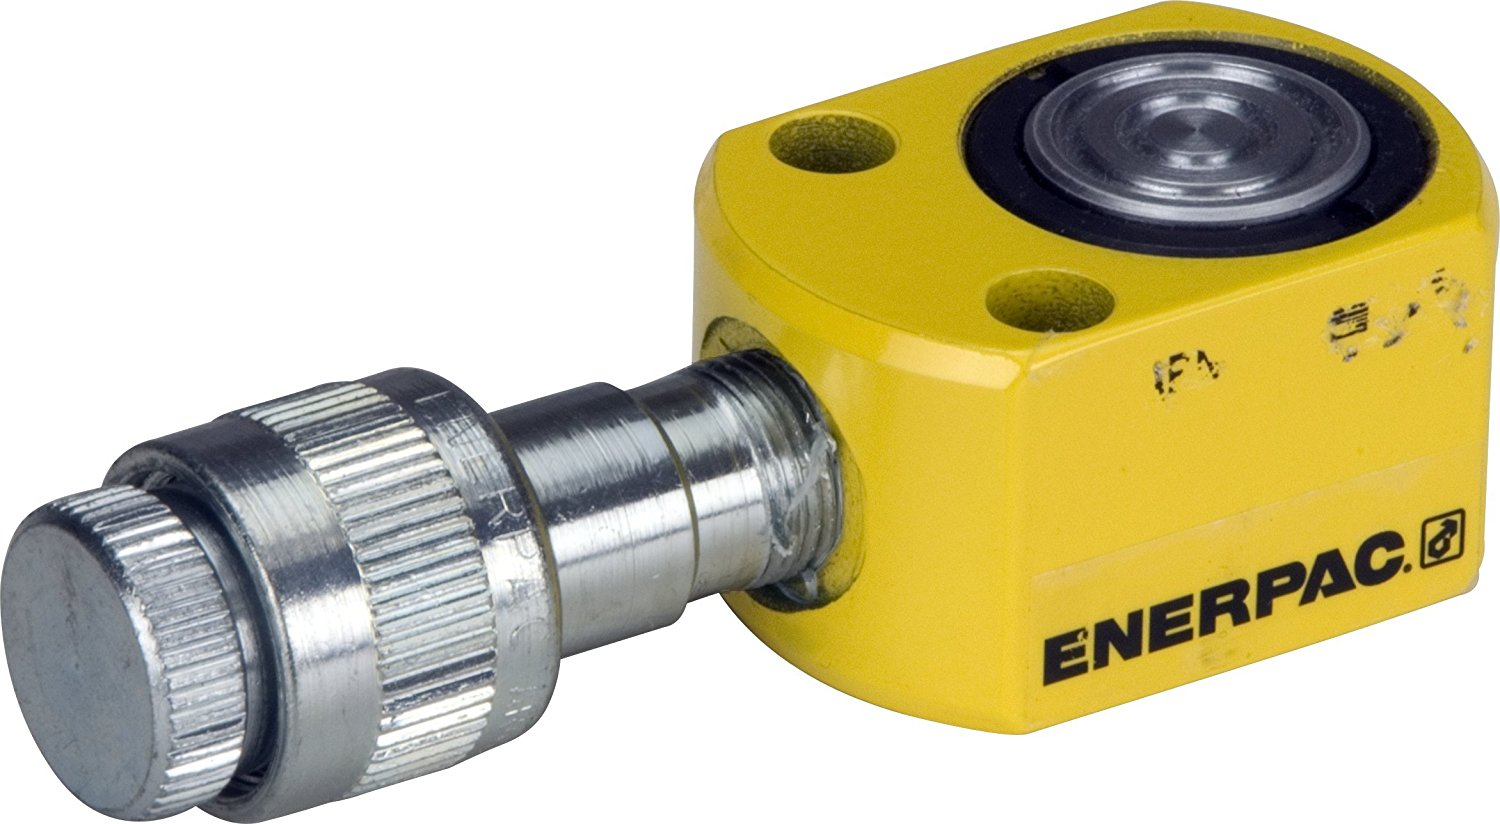 5 Helpful Tips for Purchasing the Right Enerpac Cylinders